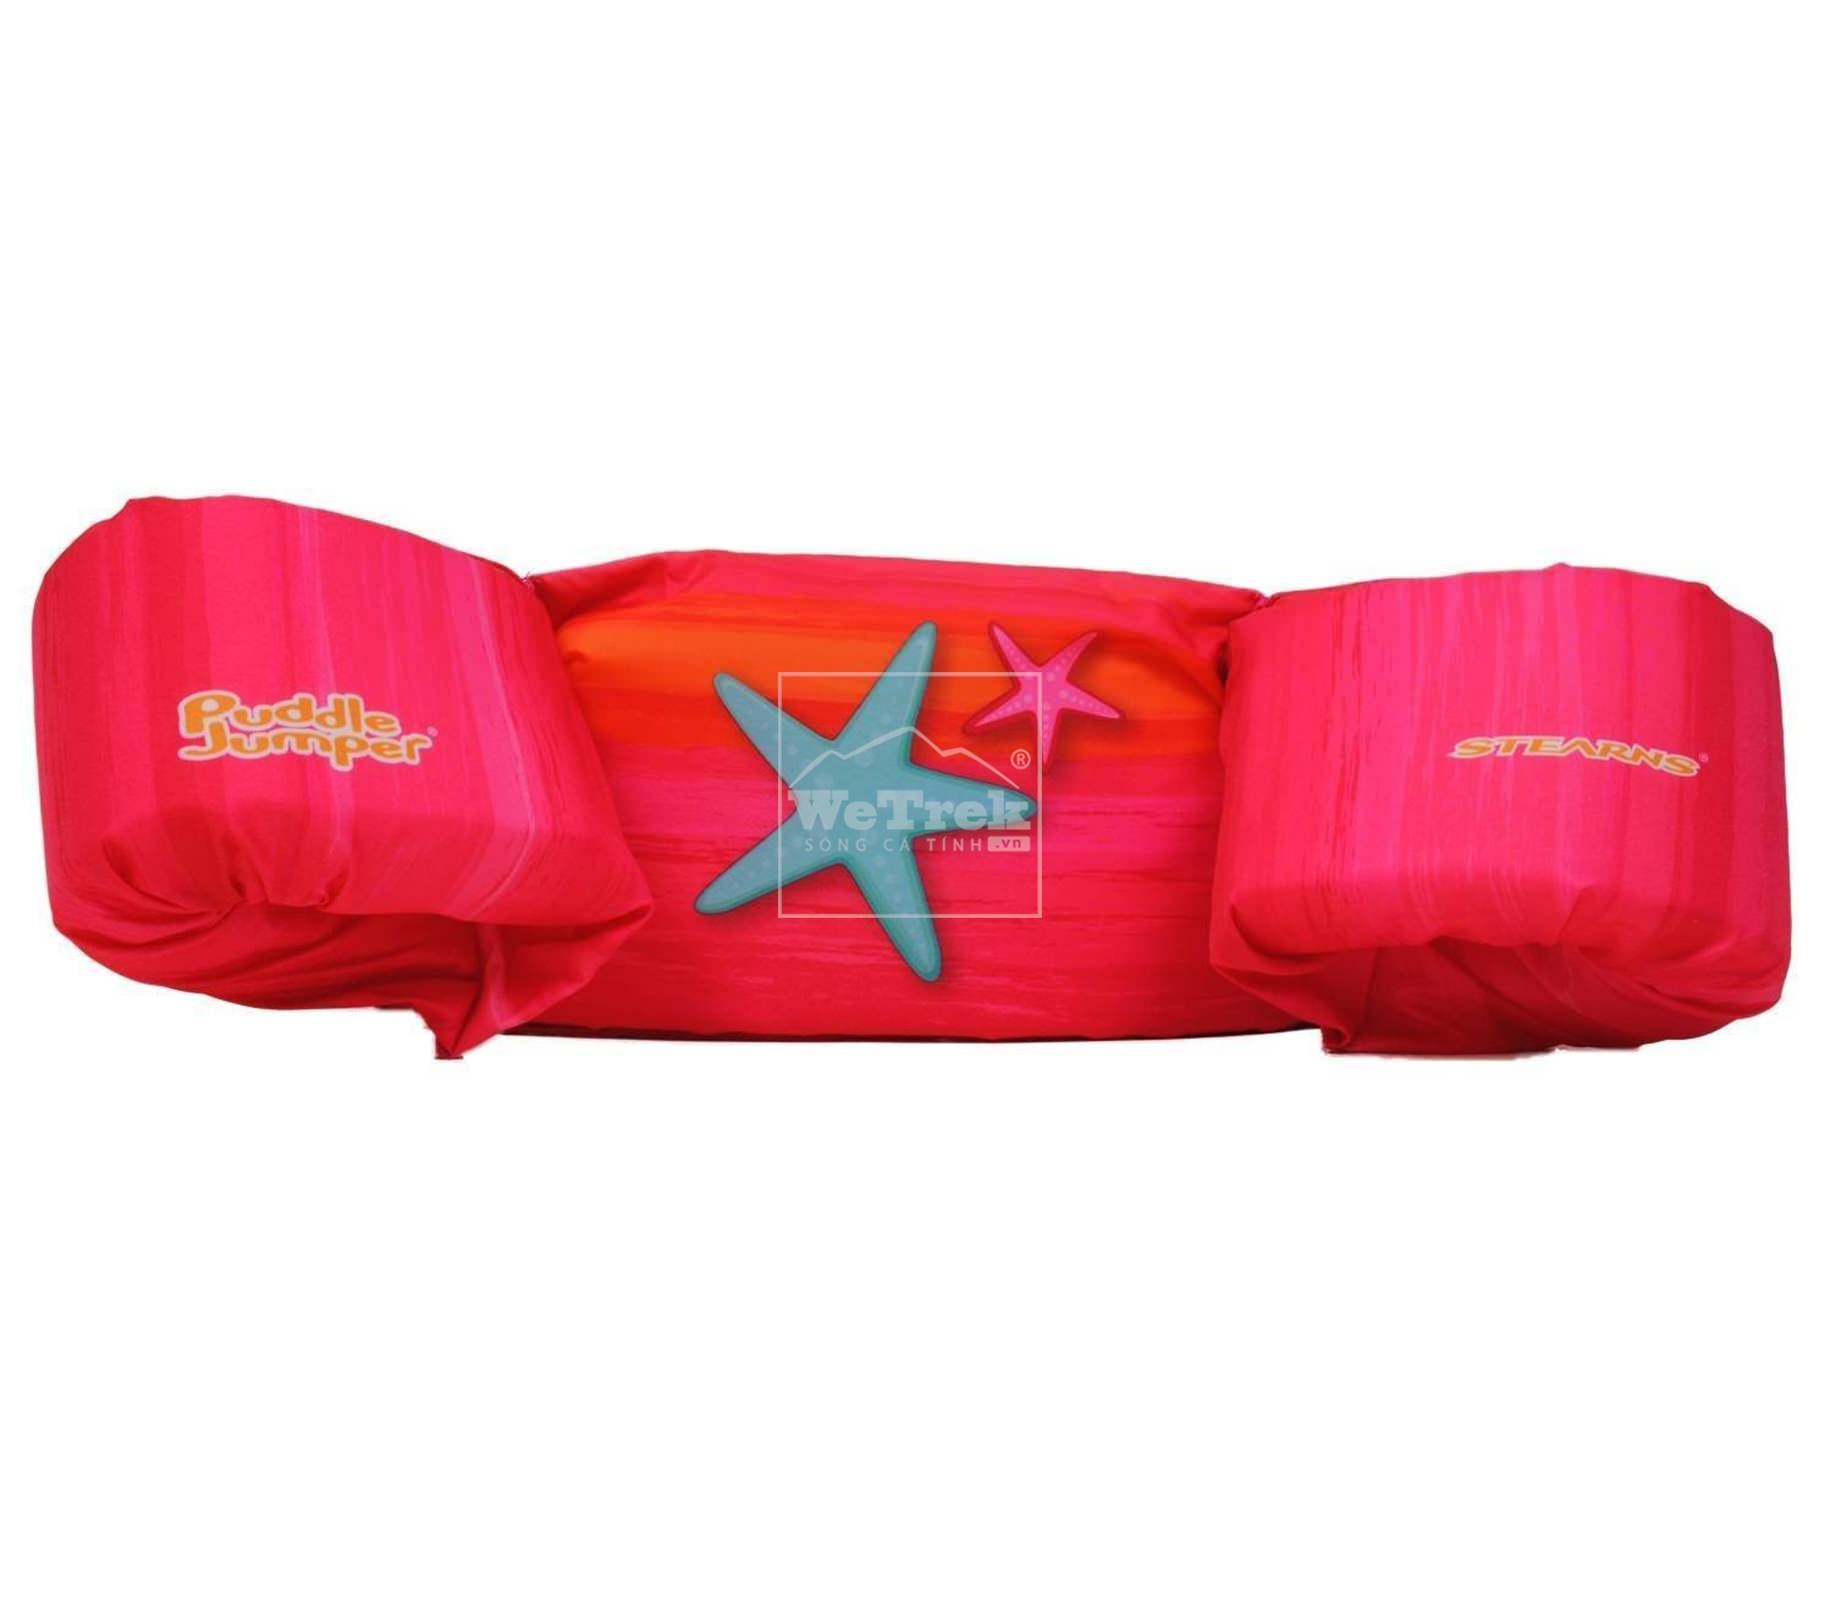 Phao đeo tay Stearns Puddle Jumper Deluxe Starfish 2000022187 - 5942